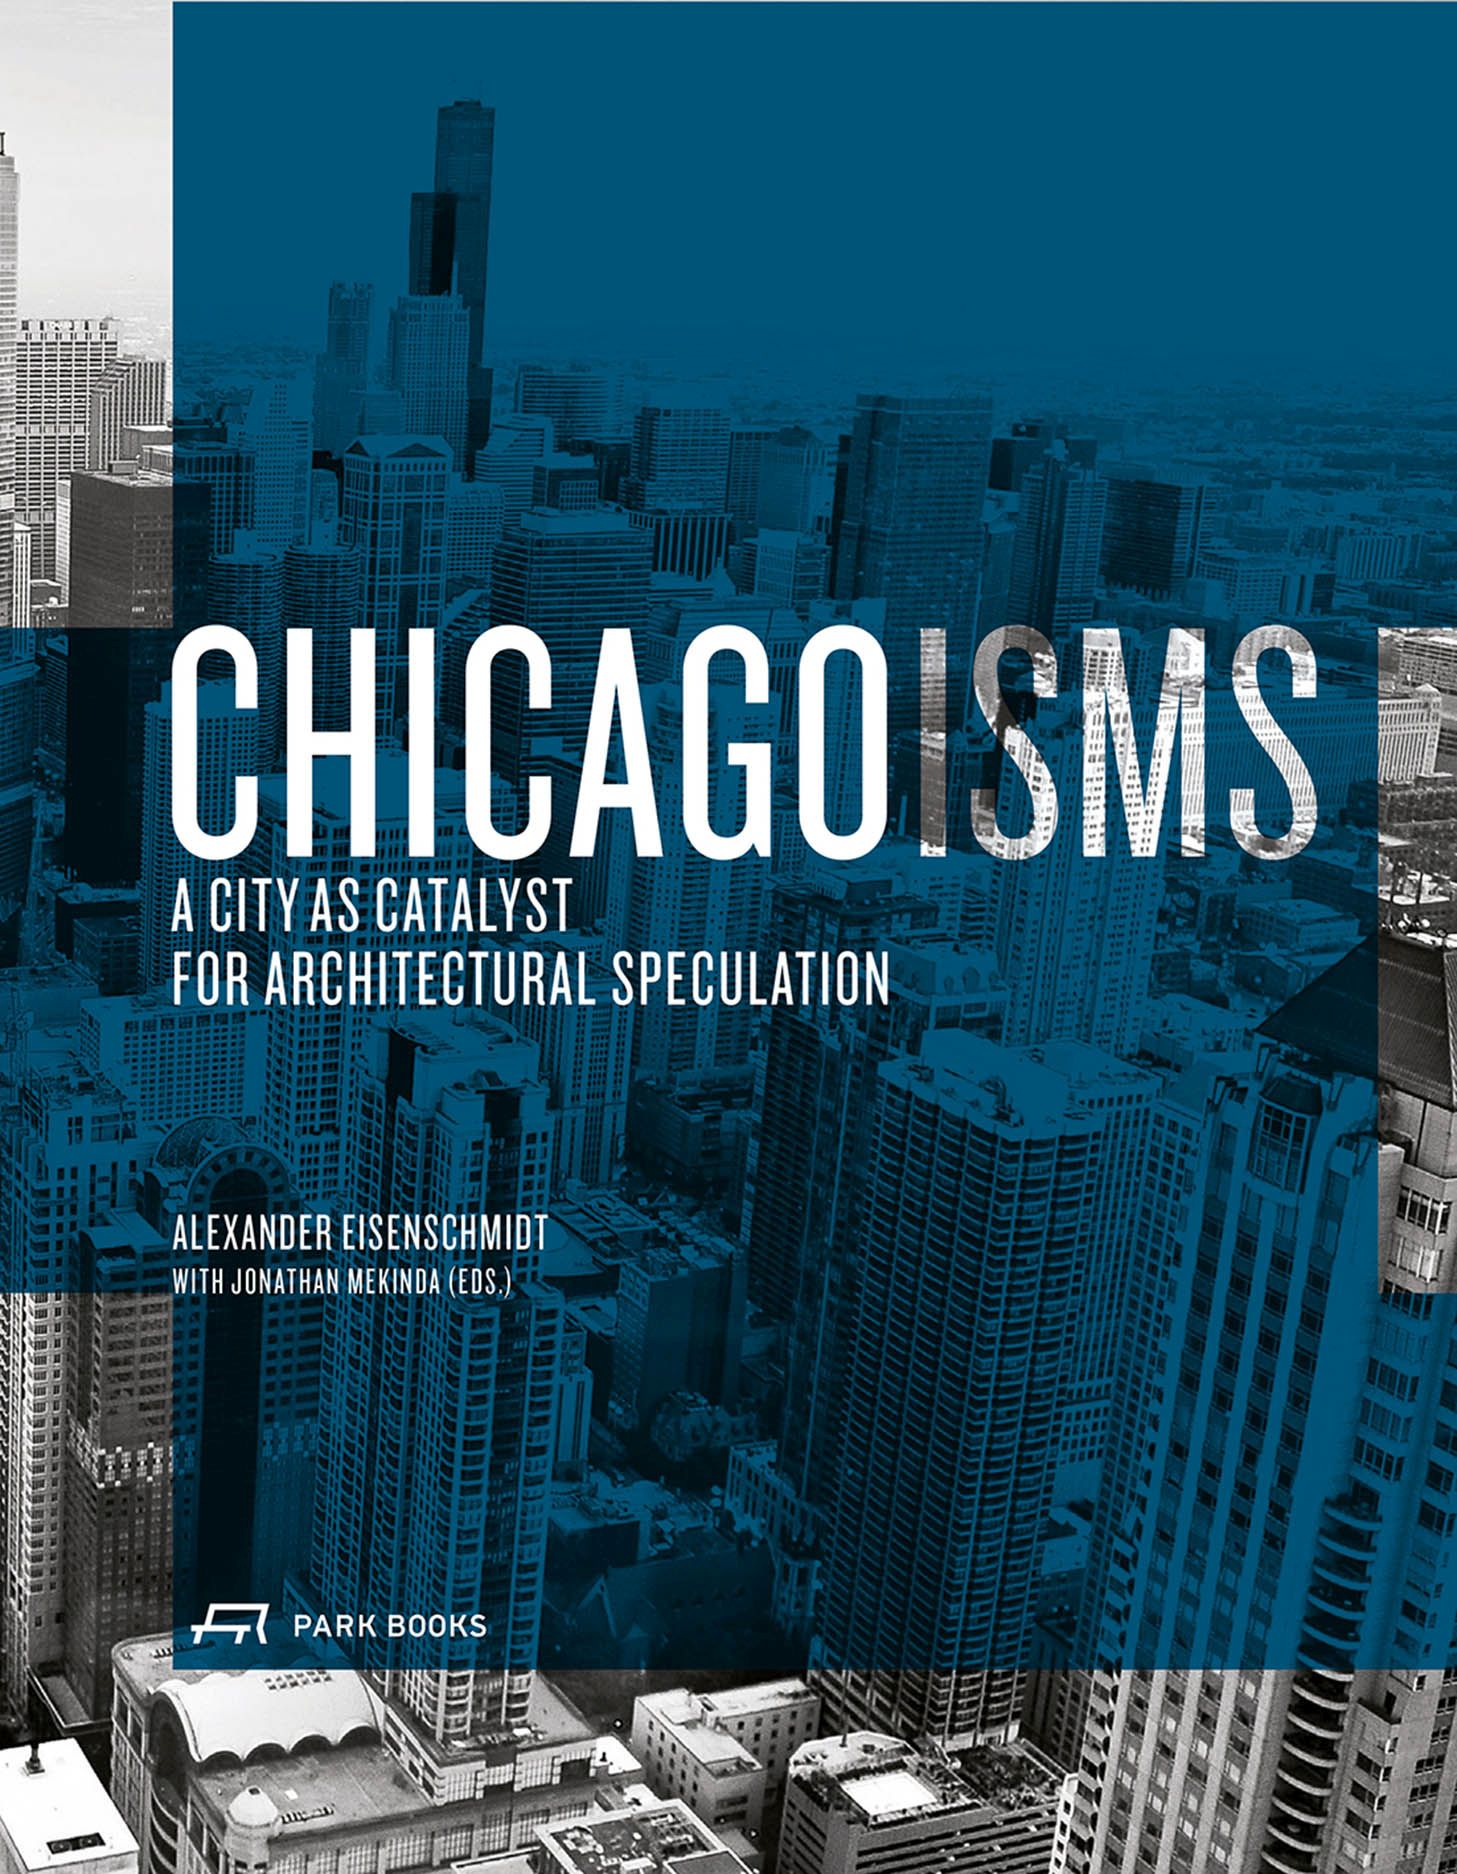 Chicagoisms: The City as Catalyst for Architectural Speculation